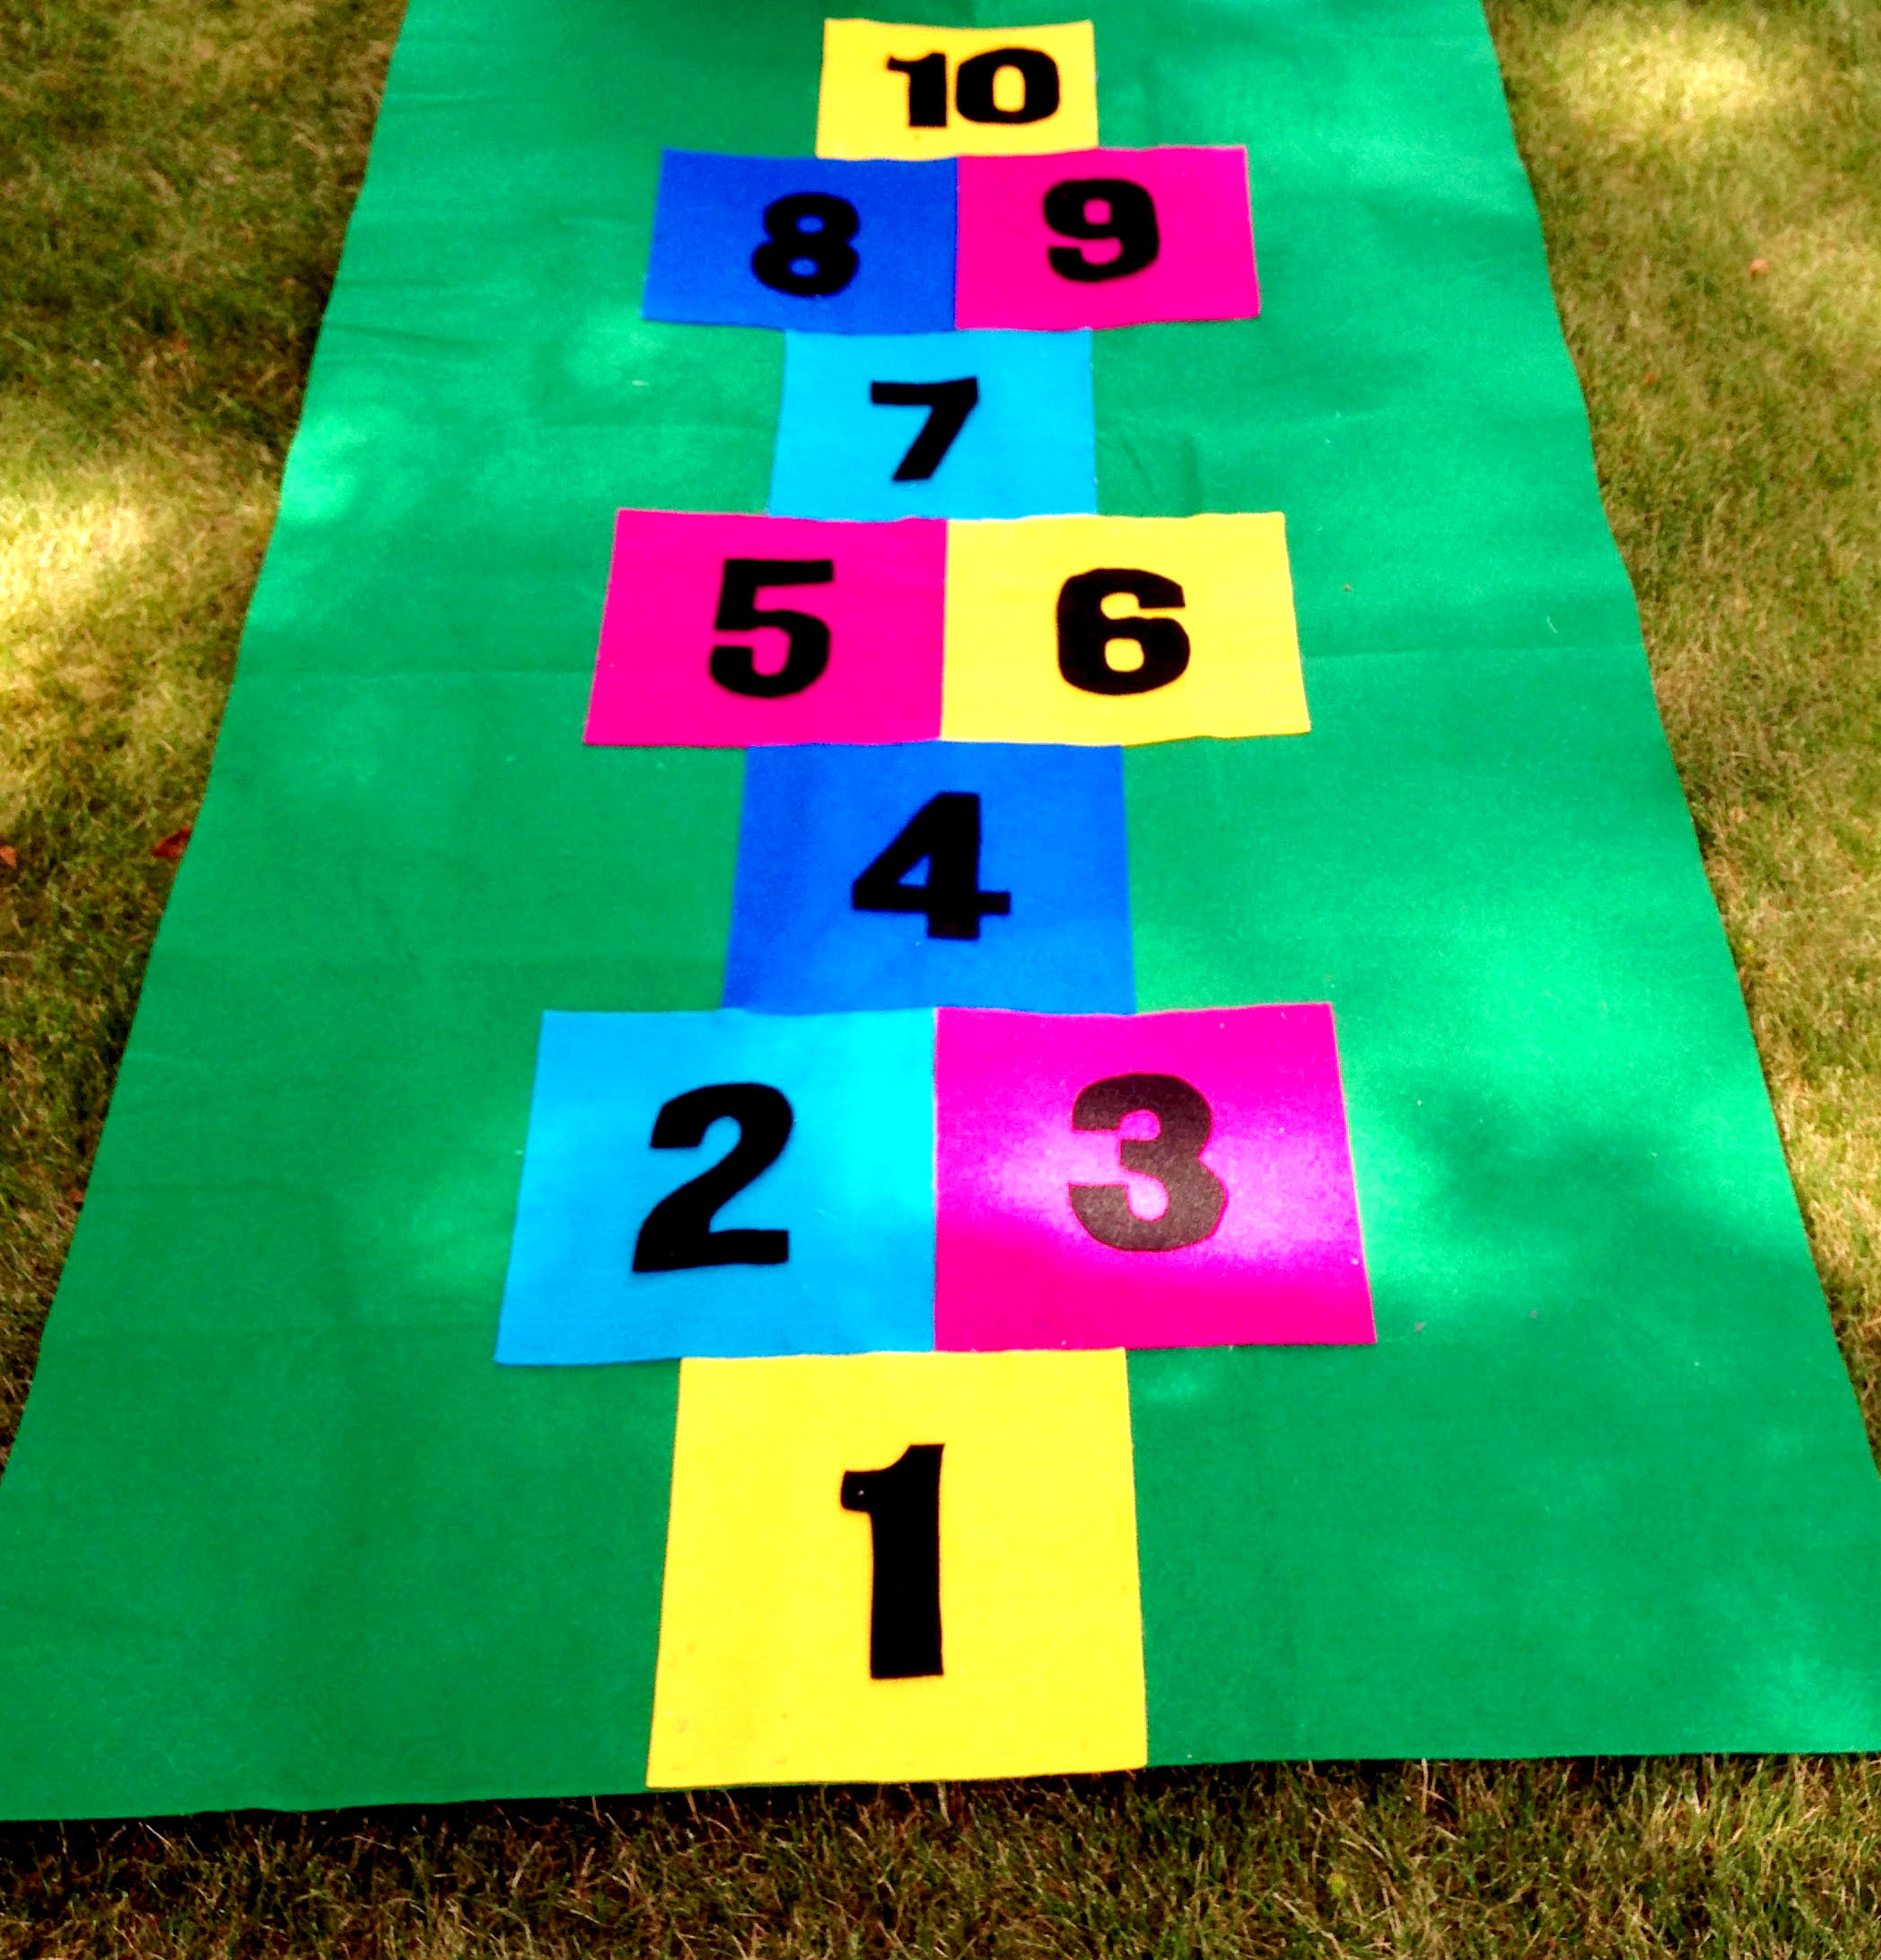 How to Make a Homemade Hopscotch Mat